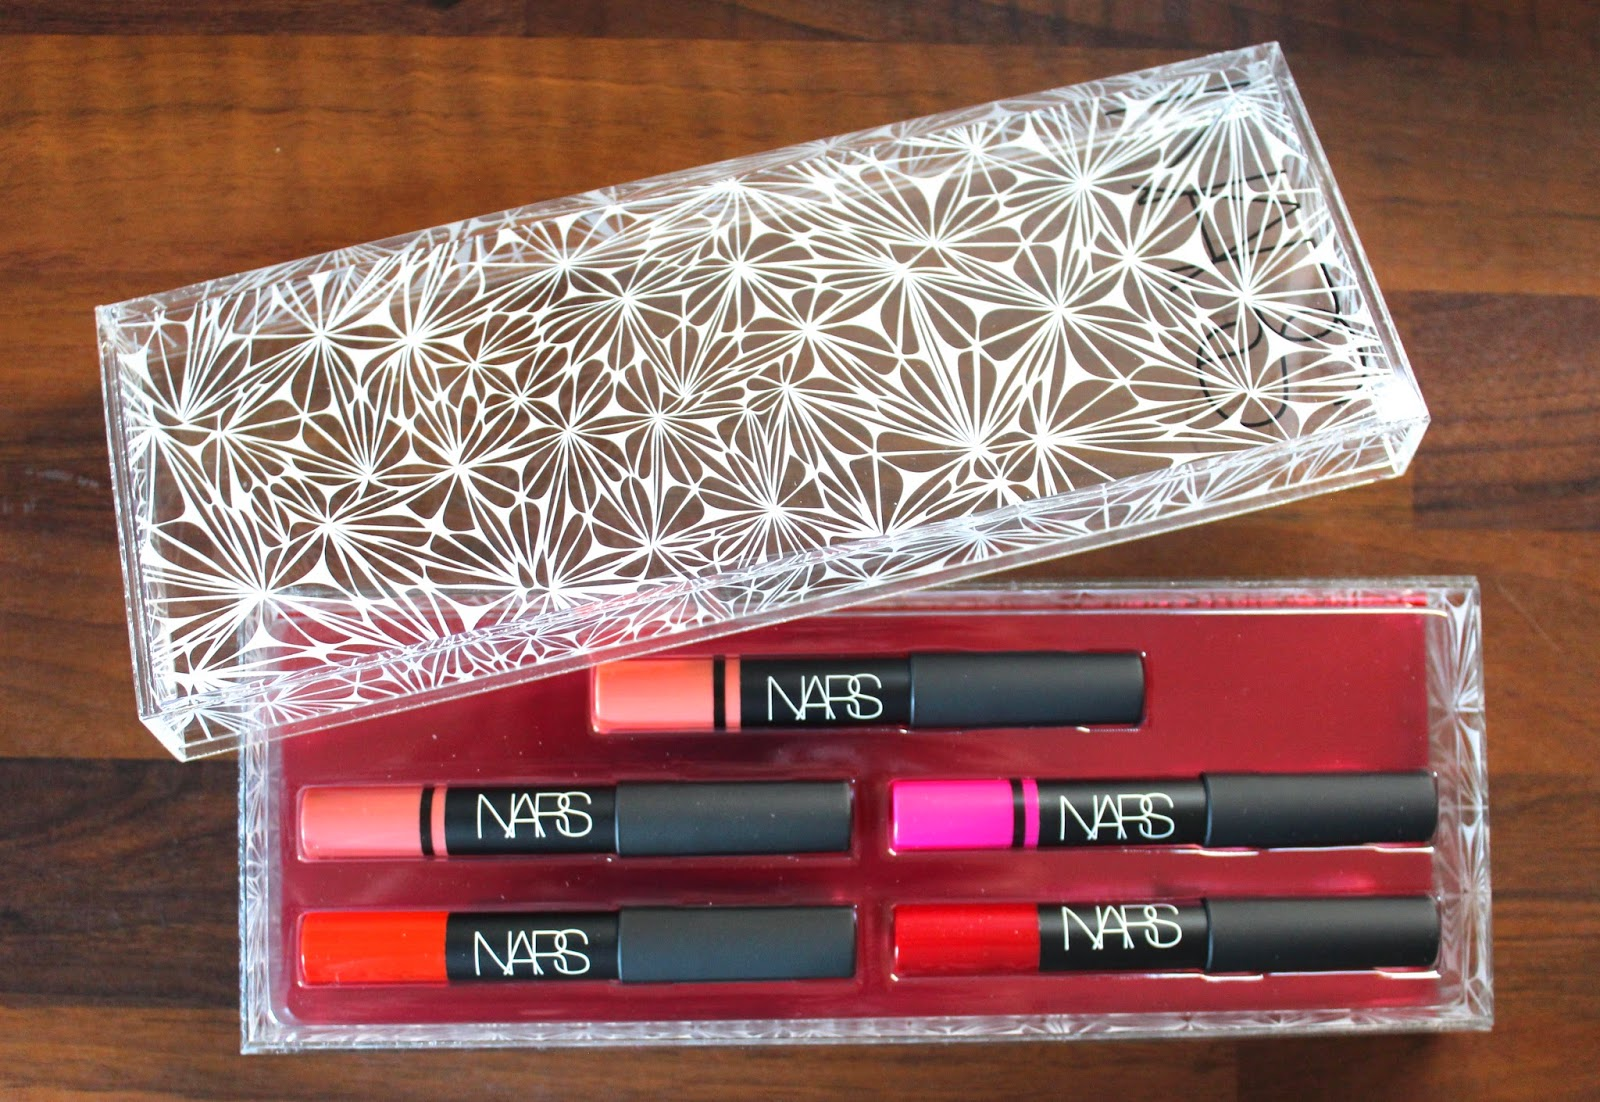 beauty blog blogger bloggers bblogger bbloggers nars make up velvet matte lip pencil lips satin finish iberico yu cruella torres del paine descanso christmas gift selfie instagram